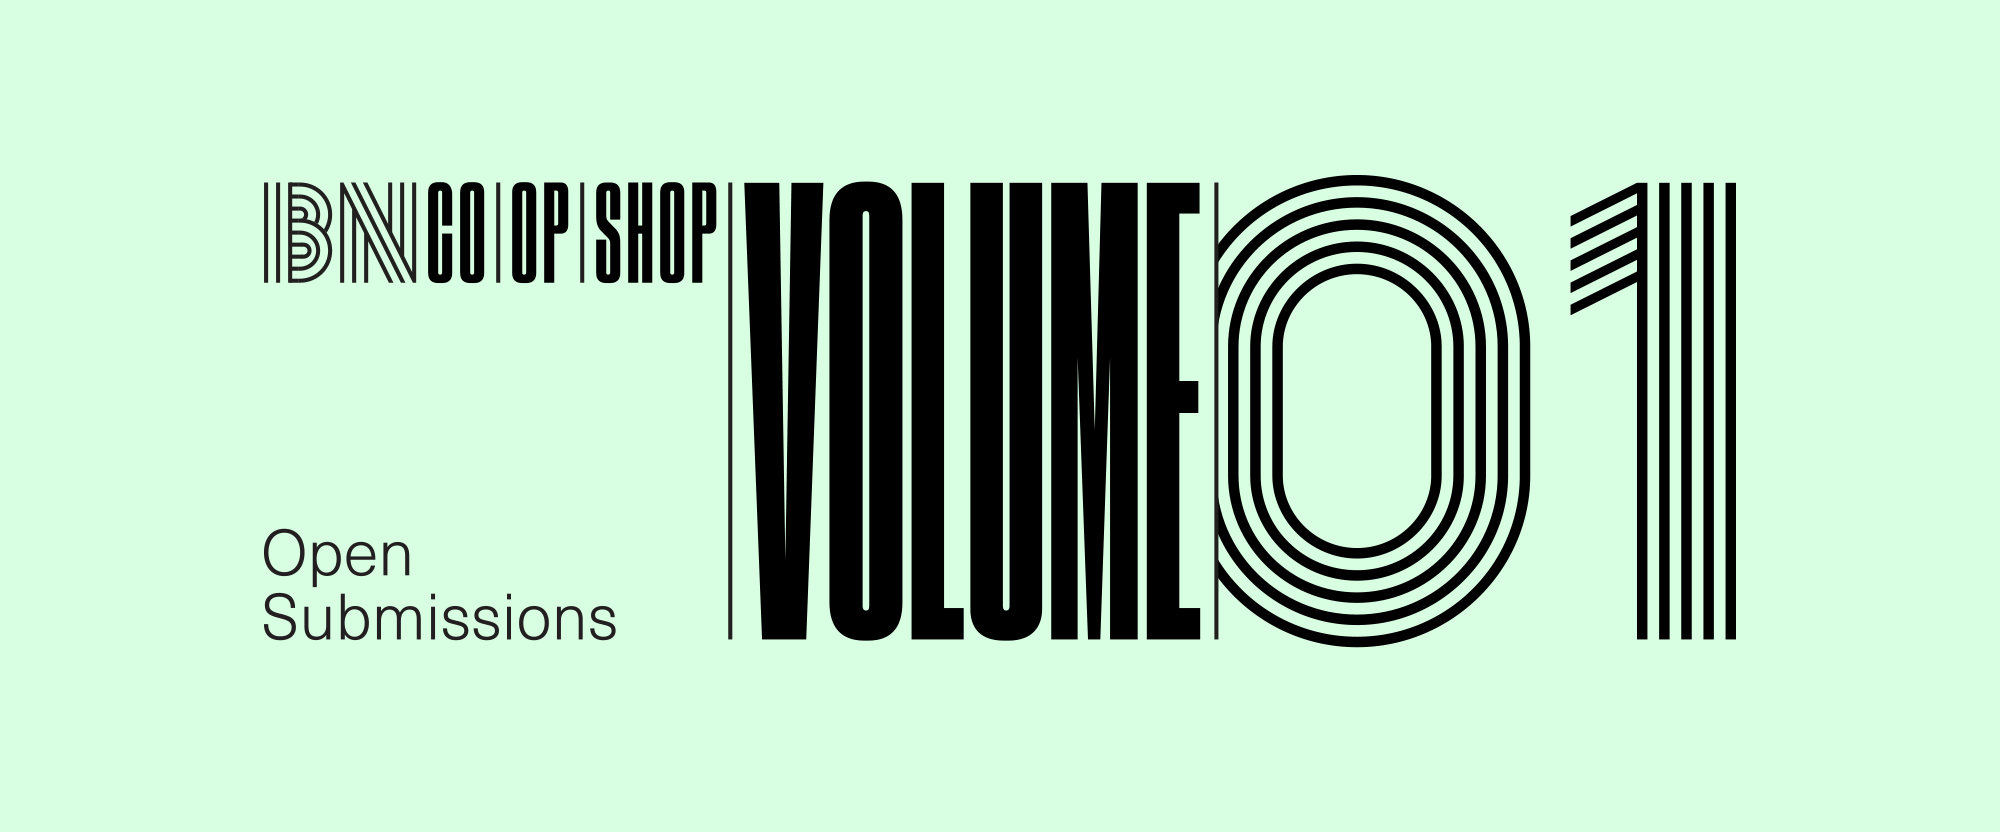 Co-Op Shop: Open Submissions, Volume 1